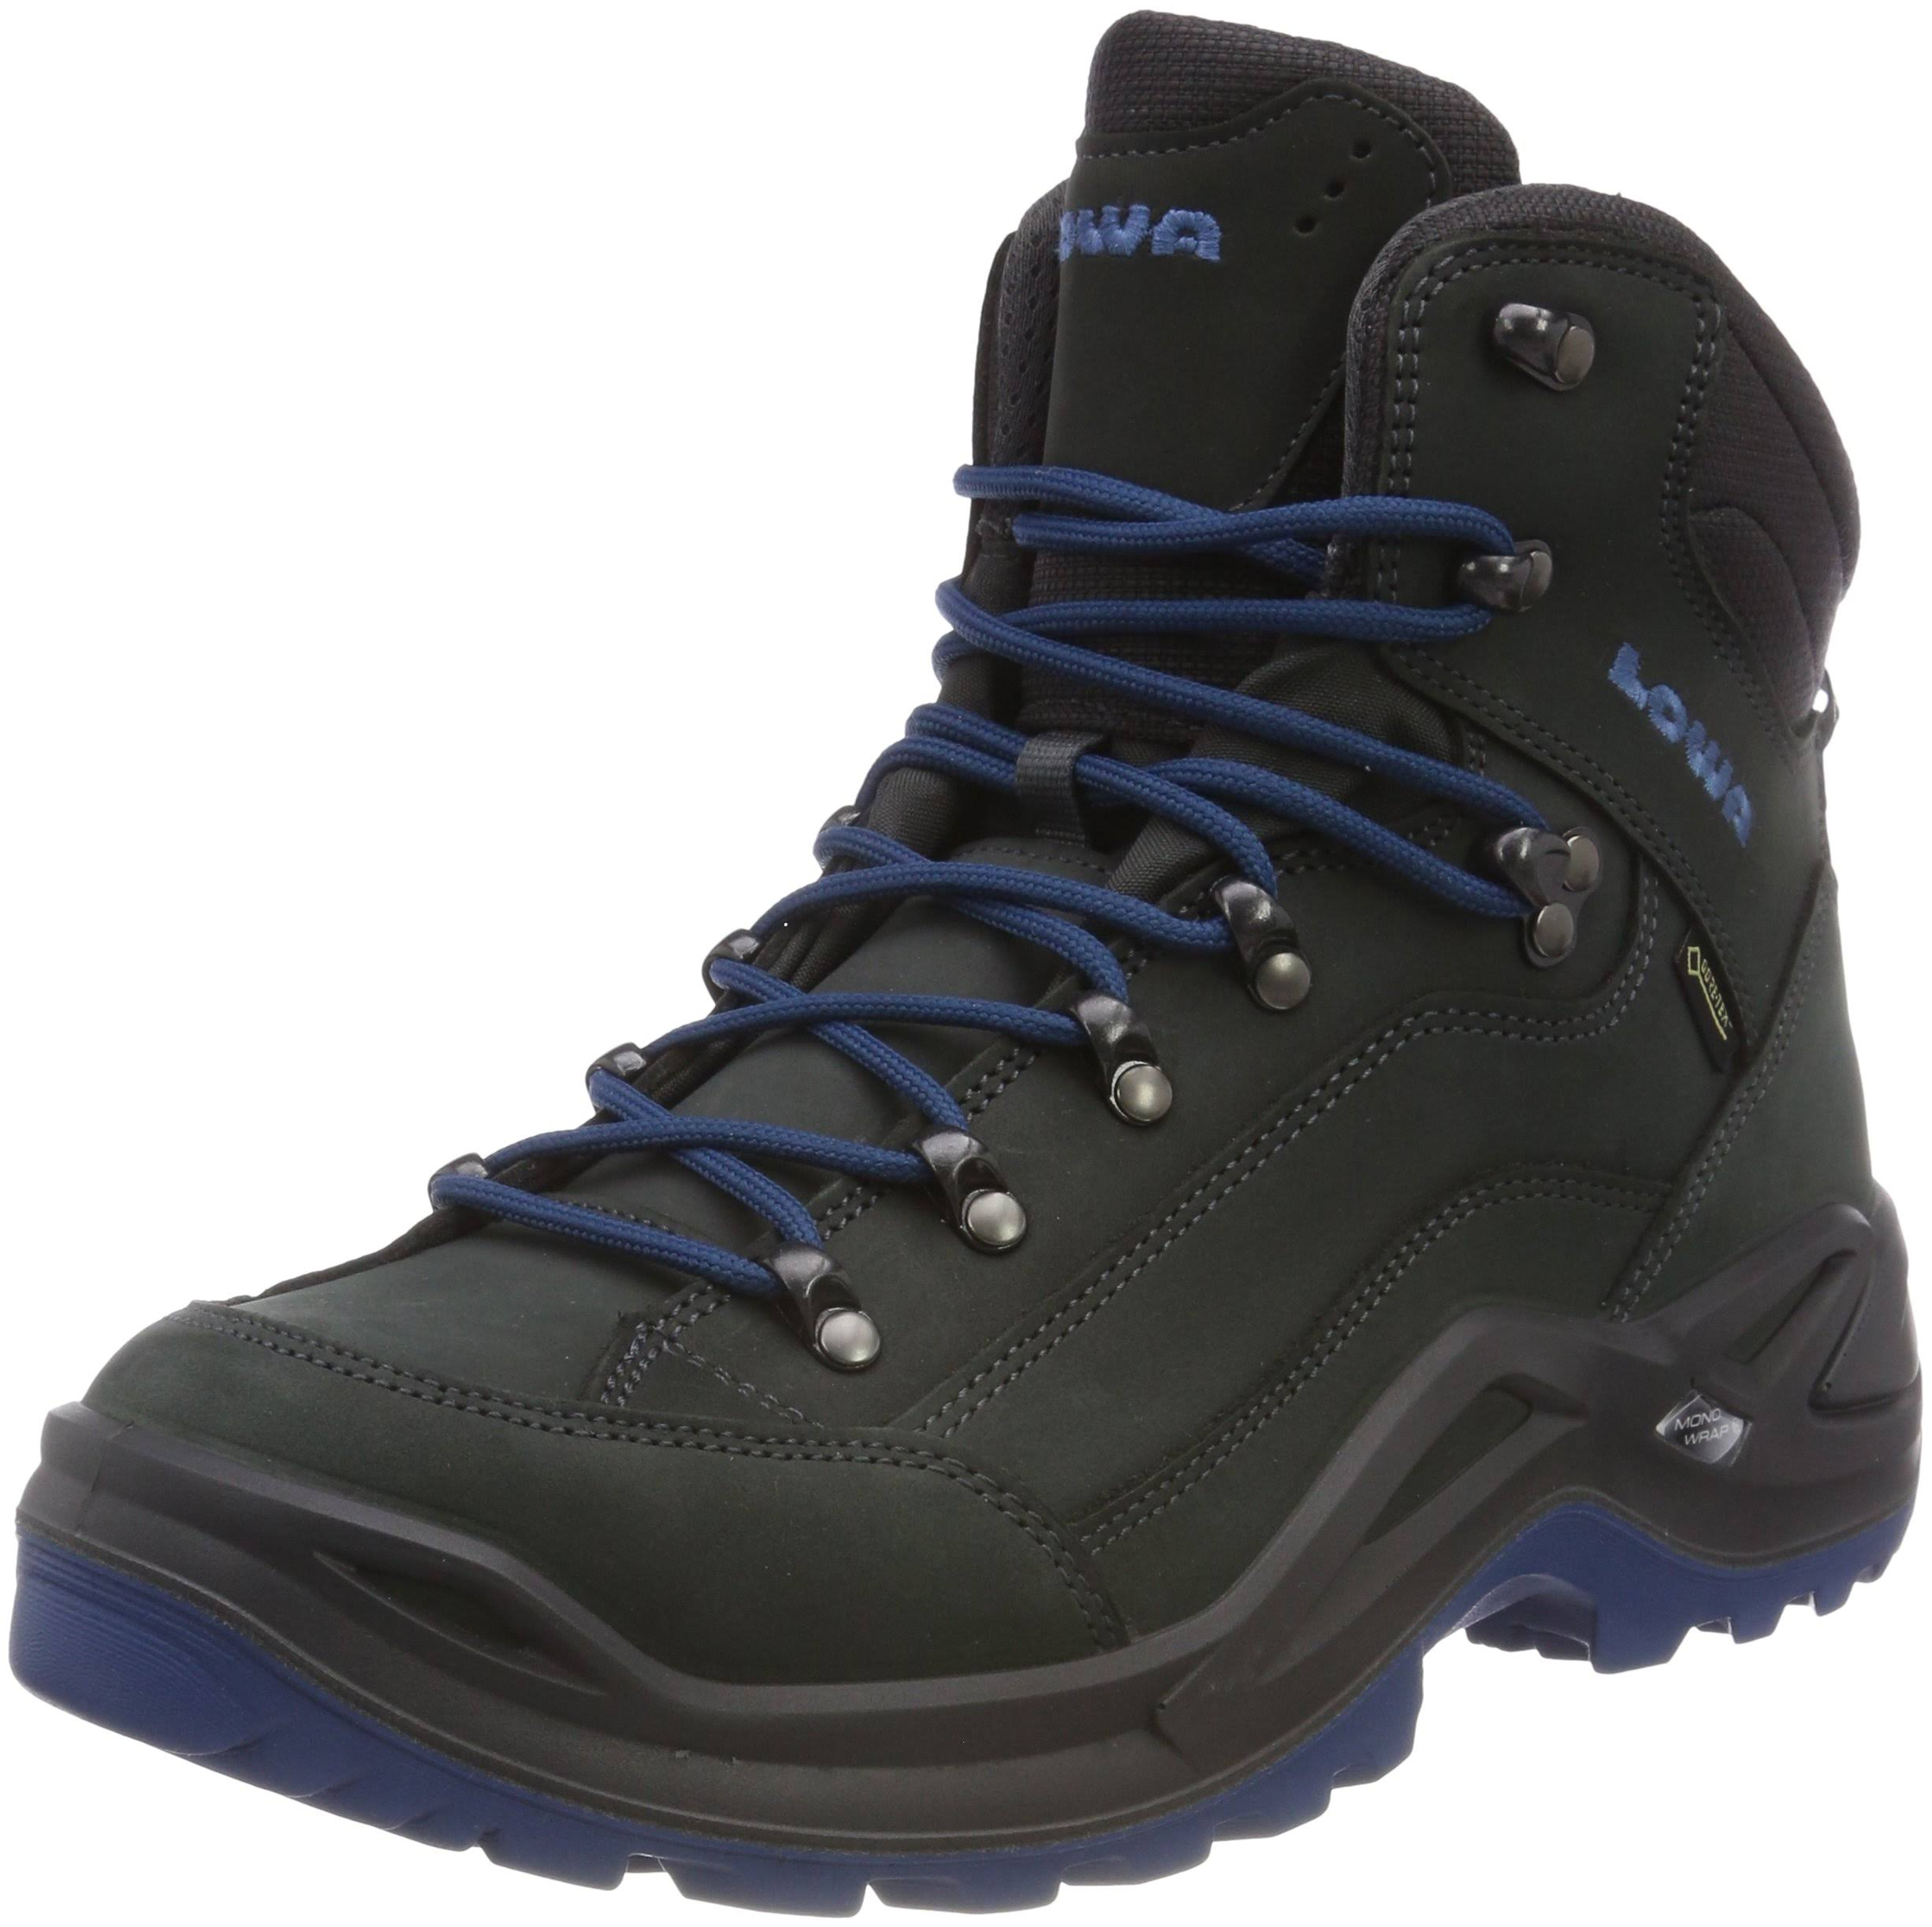 denim Renegade 8 Lowa Walking anthracite Mid denim Boot Gtx Anthracite uk B6dqw7YqPn